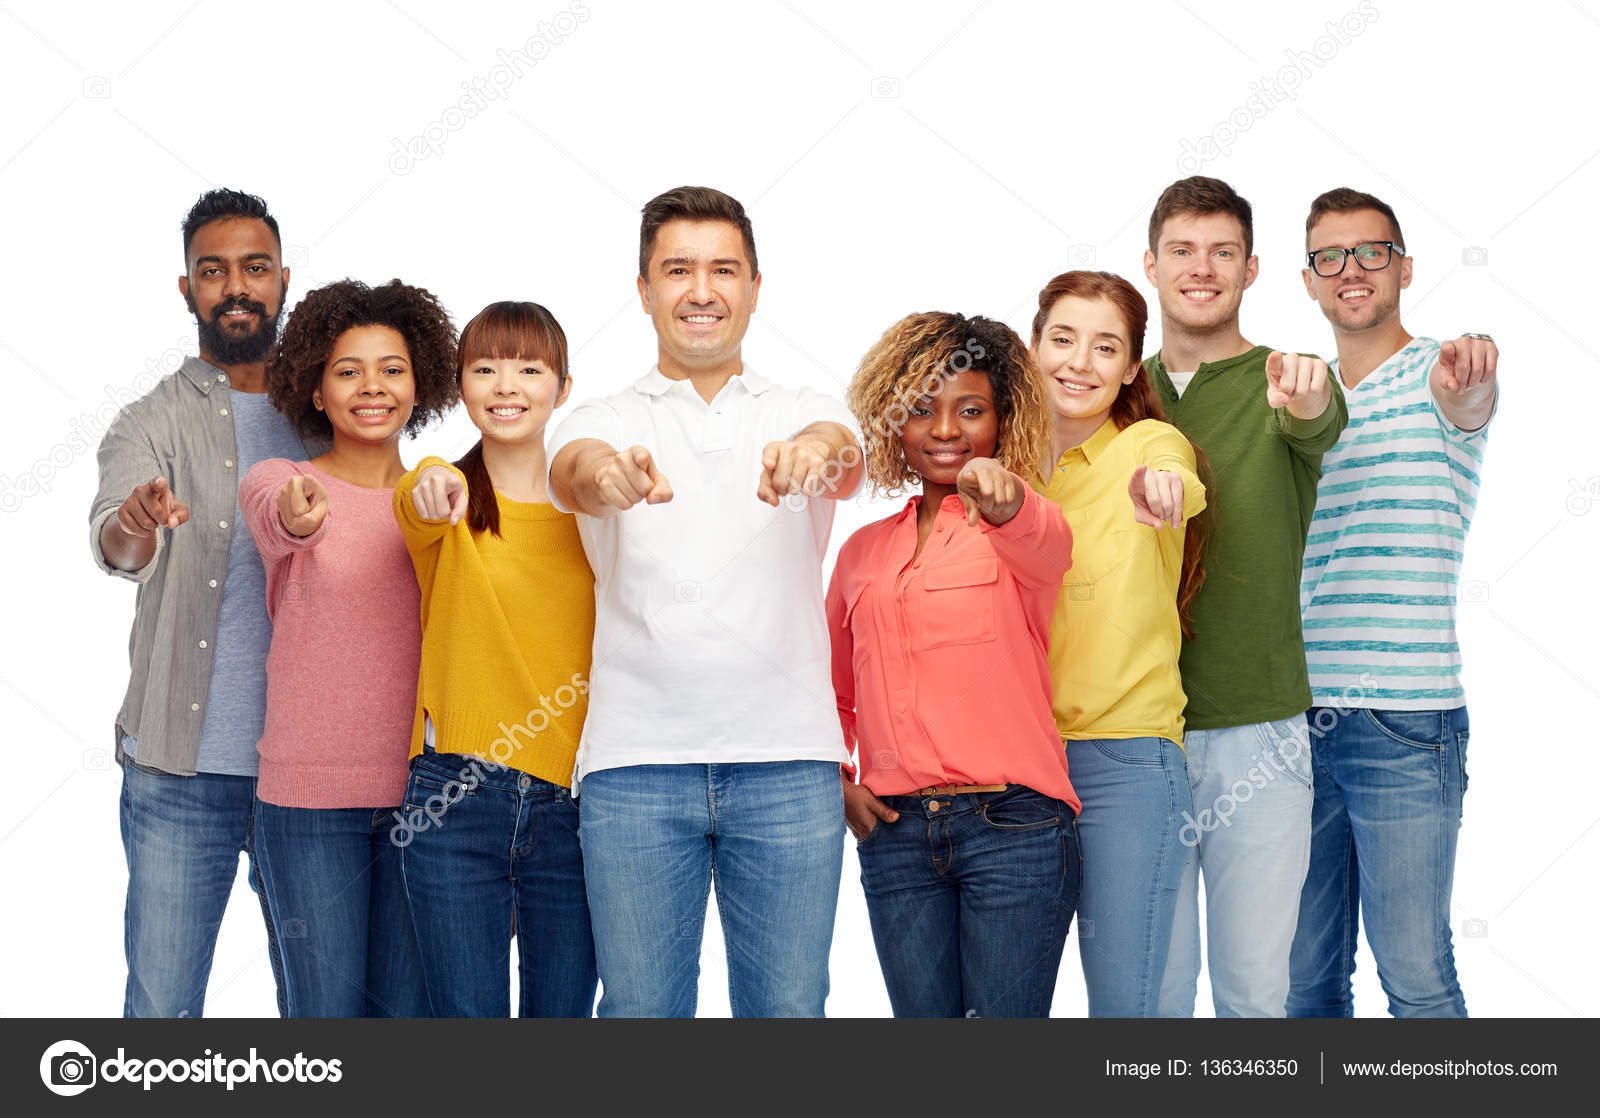 depositphotos_136346350-stock-photo-international-group-of-people-pointing.jpg